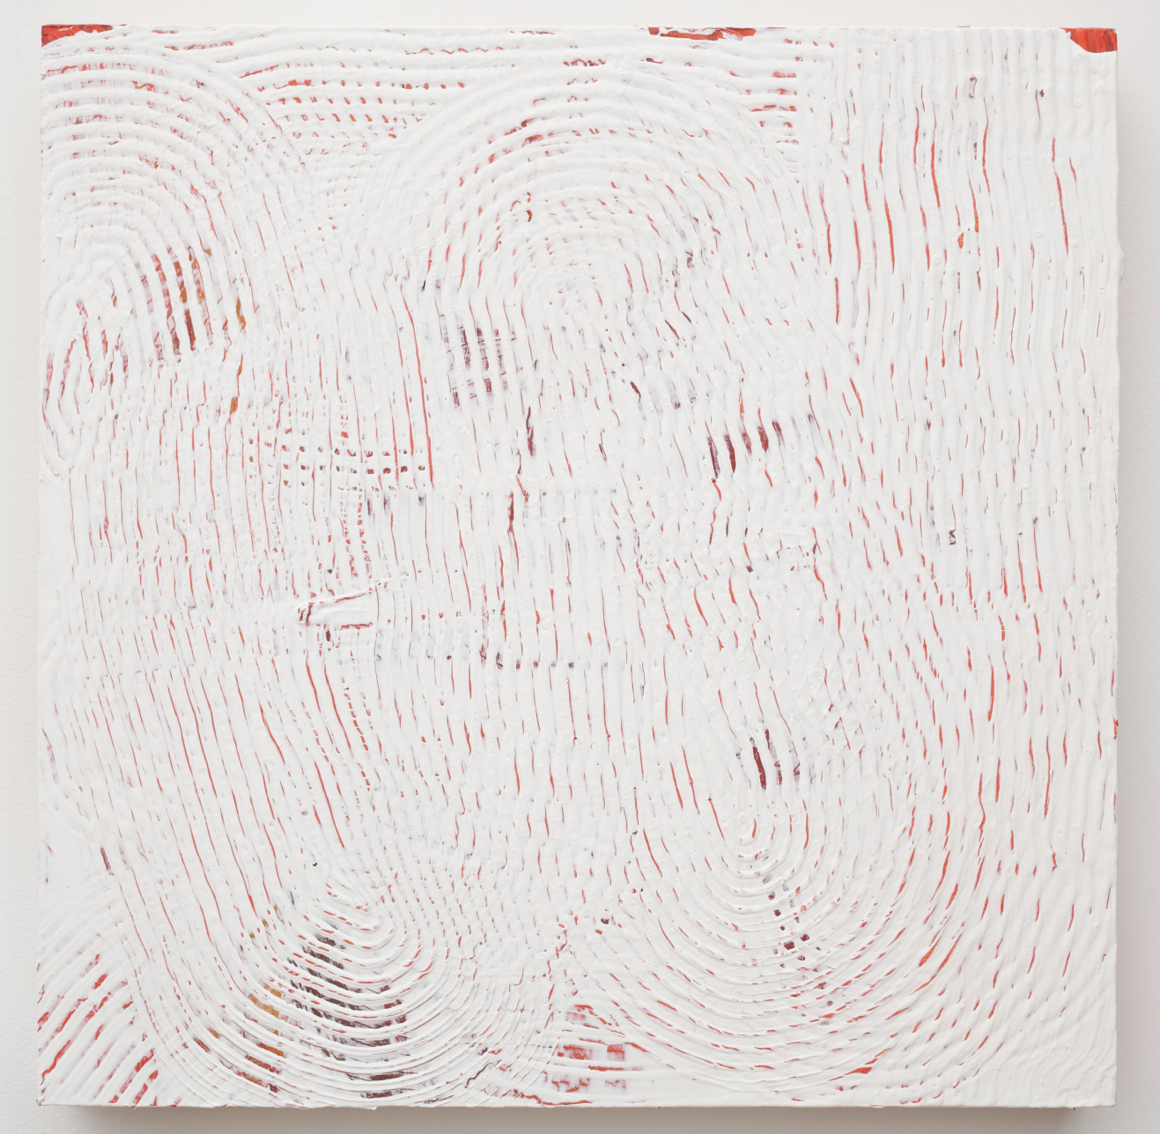 "<p><span class=""name"">Adam Bateman</span><br><em>White and Red</em><span class='media'>acrylic and spray paint on panel</span>15.5 x 15.5 in  (39.4 x 39.4 cm)<br>2014<br><a class='inquire' href='mailto:info@gildargallery.com?subject=Artwork Inquiry ABAT0012&body=I am interested in finding out more about White and Red by Adam Bateman'>Inquire</a></p>"